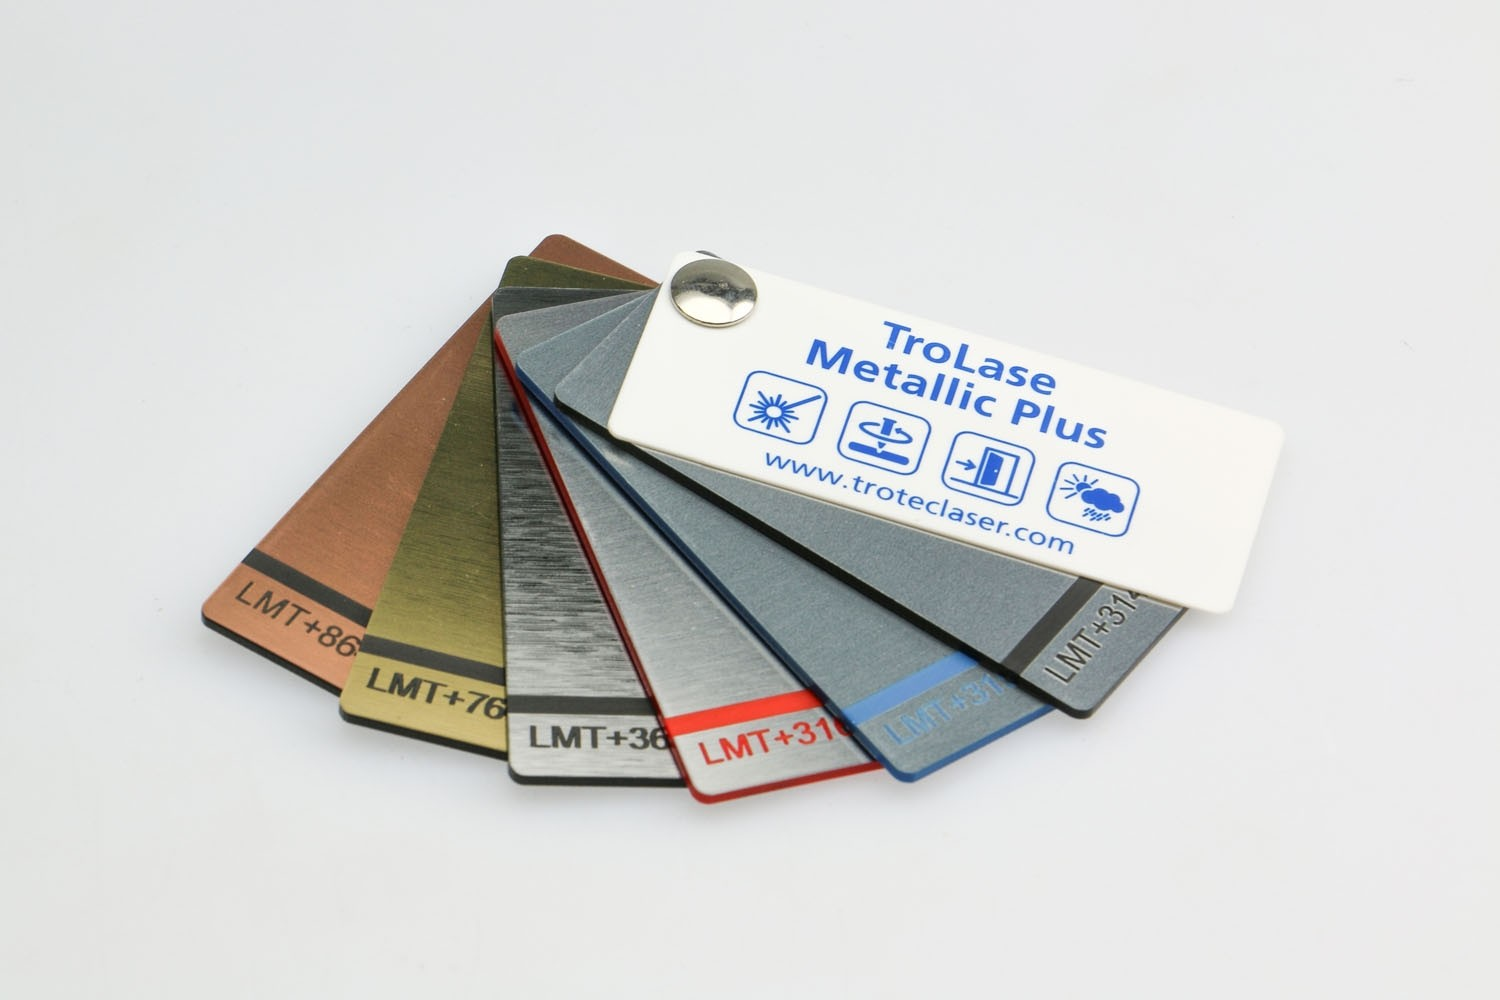 Color Fan TroLase Metallic Plus